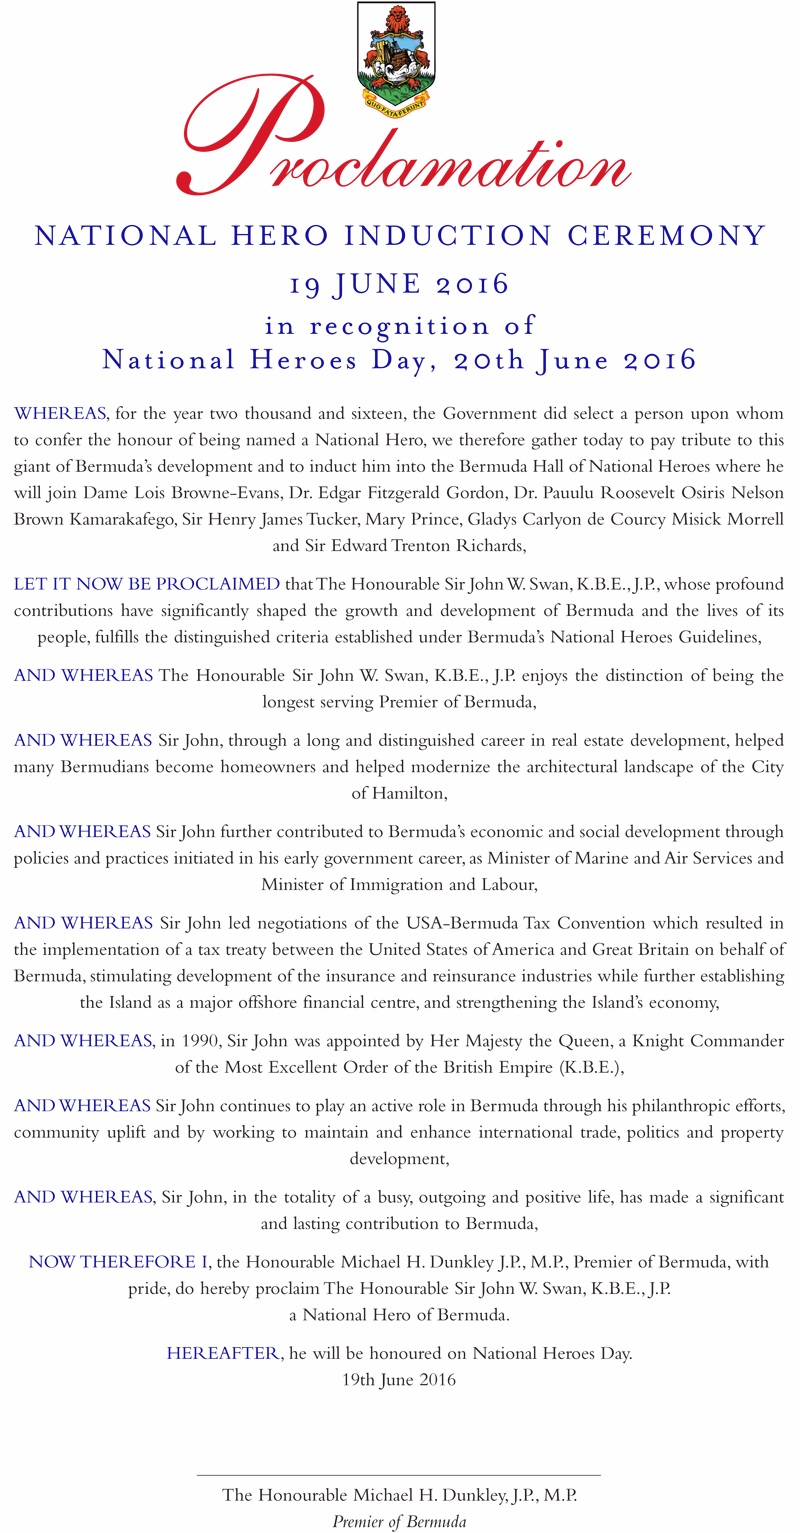 National Heroes Day Ceremony Bermuda June 19 2016 Proclamation